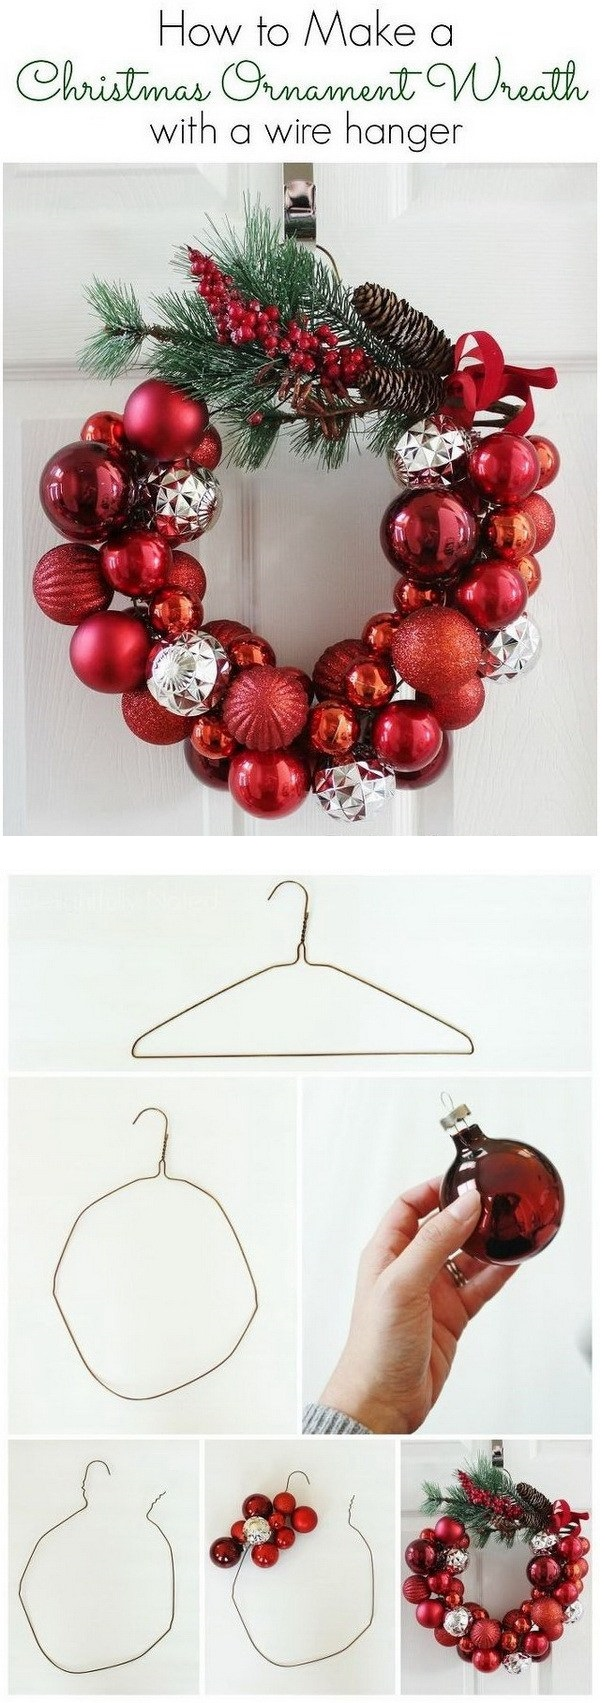 7.DIY Christmas Ornament Wreath